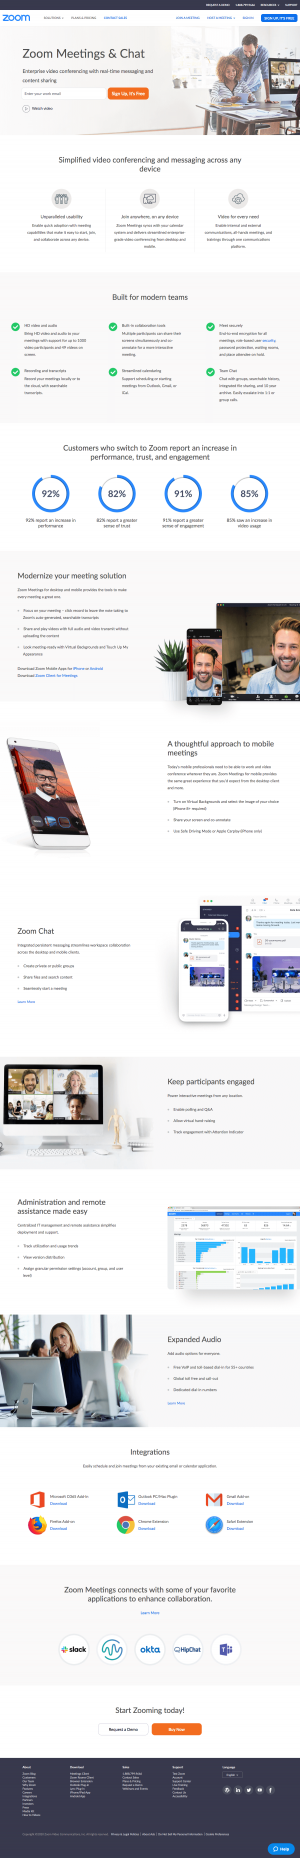 Zoom – Features page 1